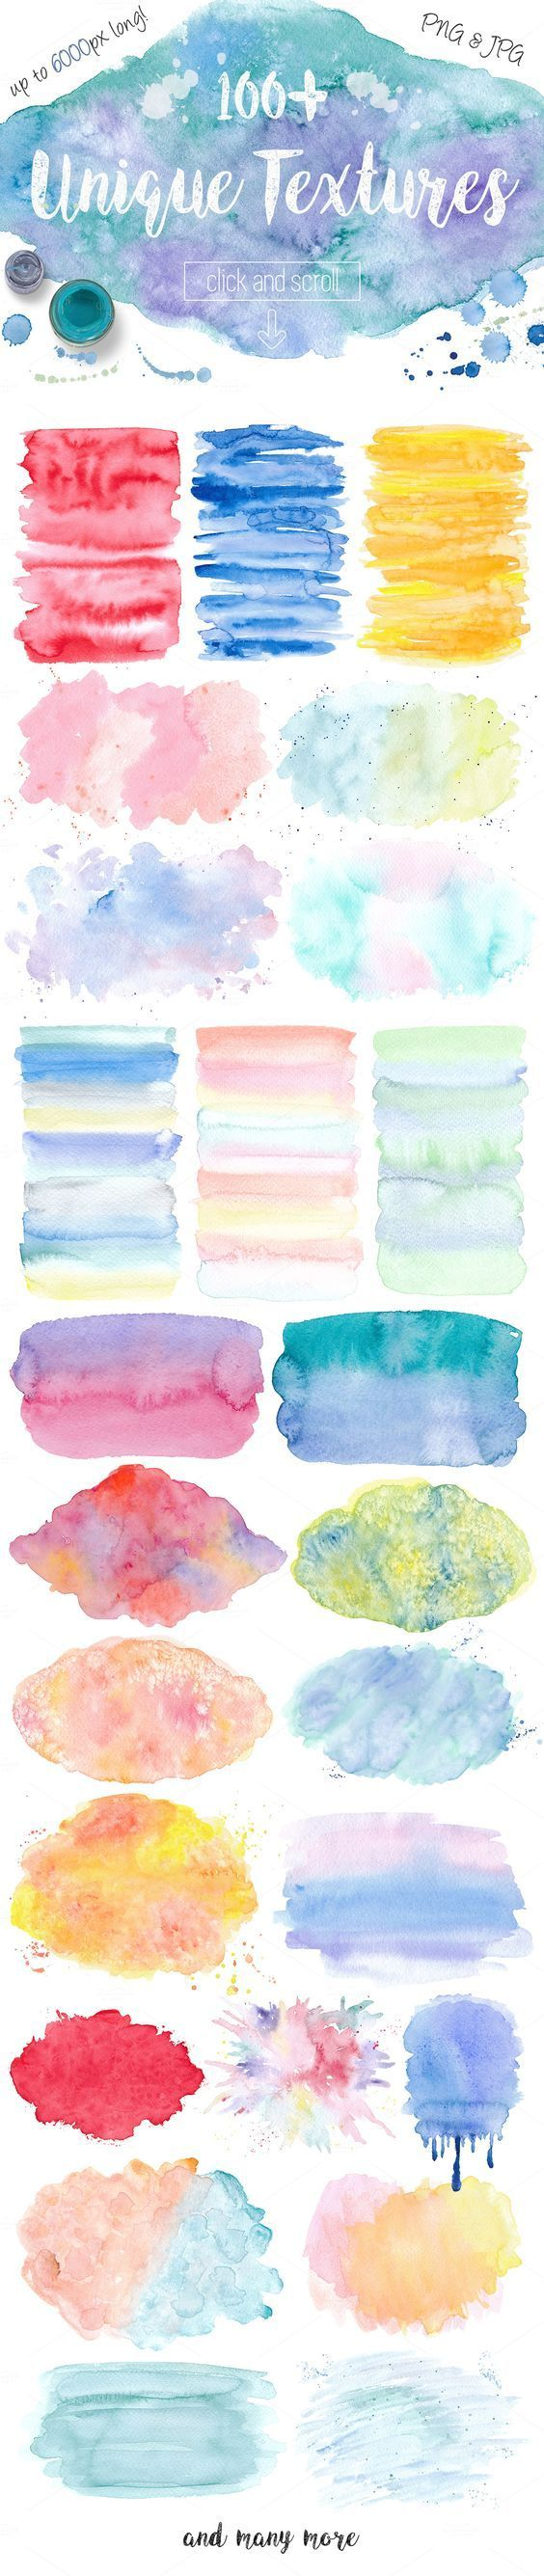 Watercolor Textures. Light & Bright by Switzergirl on @creativemarket: